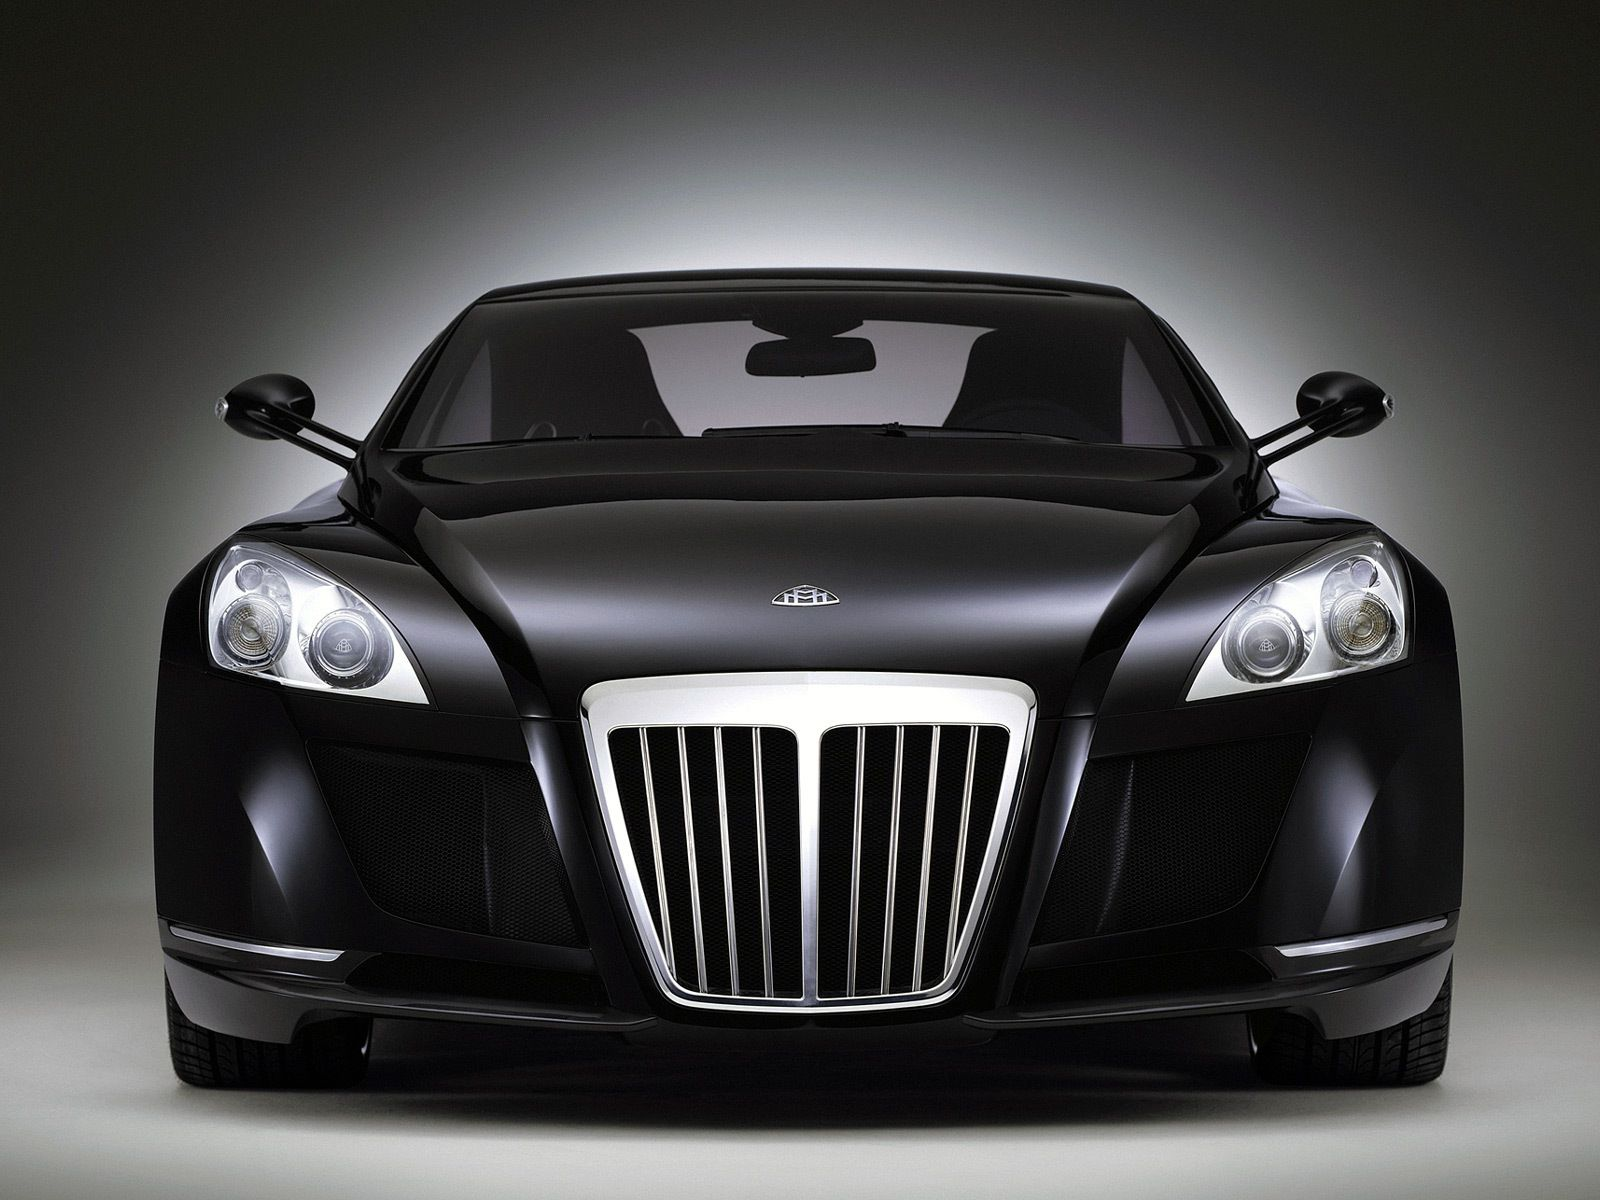 Top 10 Luxury Cars To Attract Women Maybach Exelero Super Cars Maybach Car